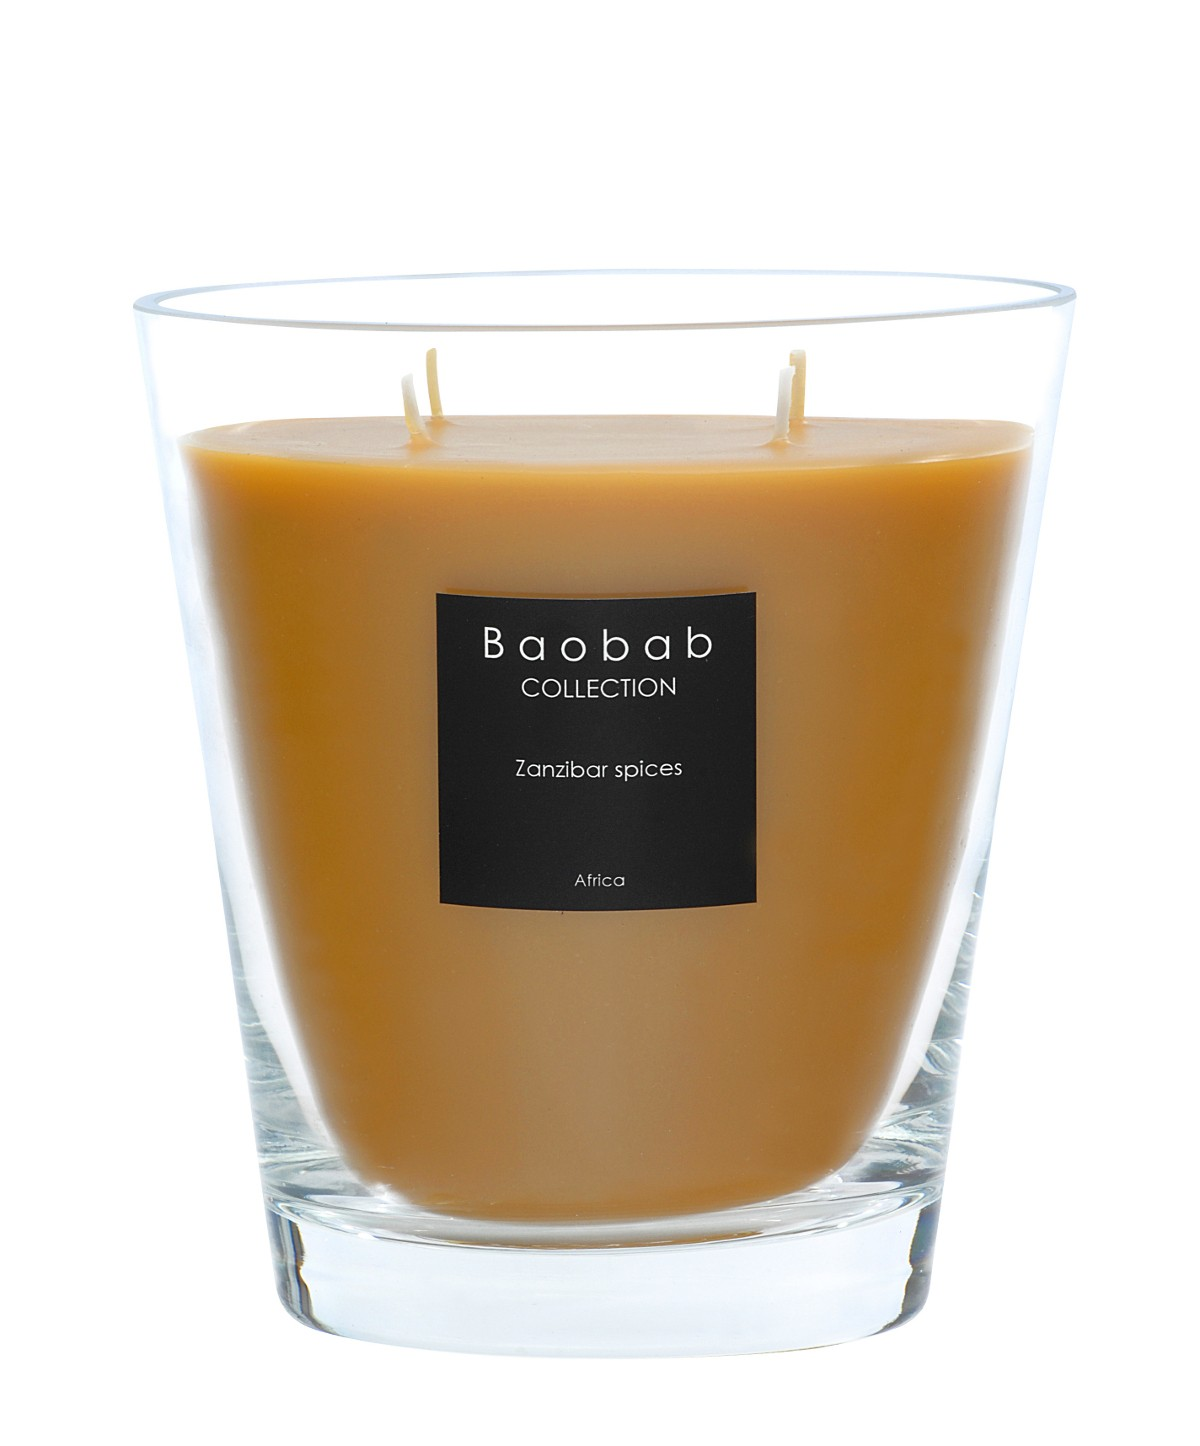 Bougie Baobab Paris Bougie Max 16 Zanzibar Spices De Baobab Collection